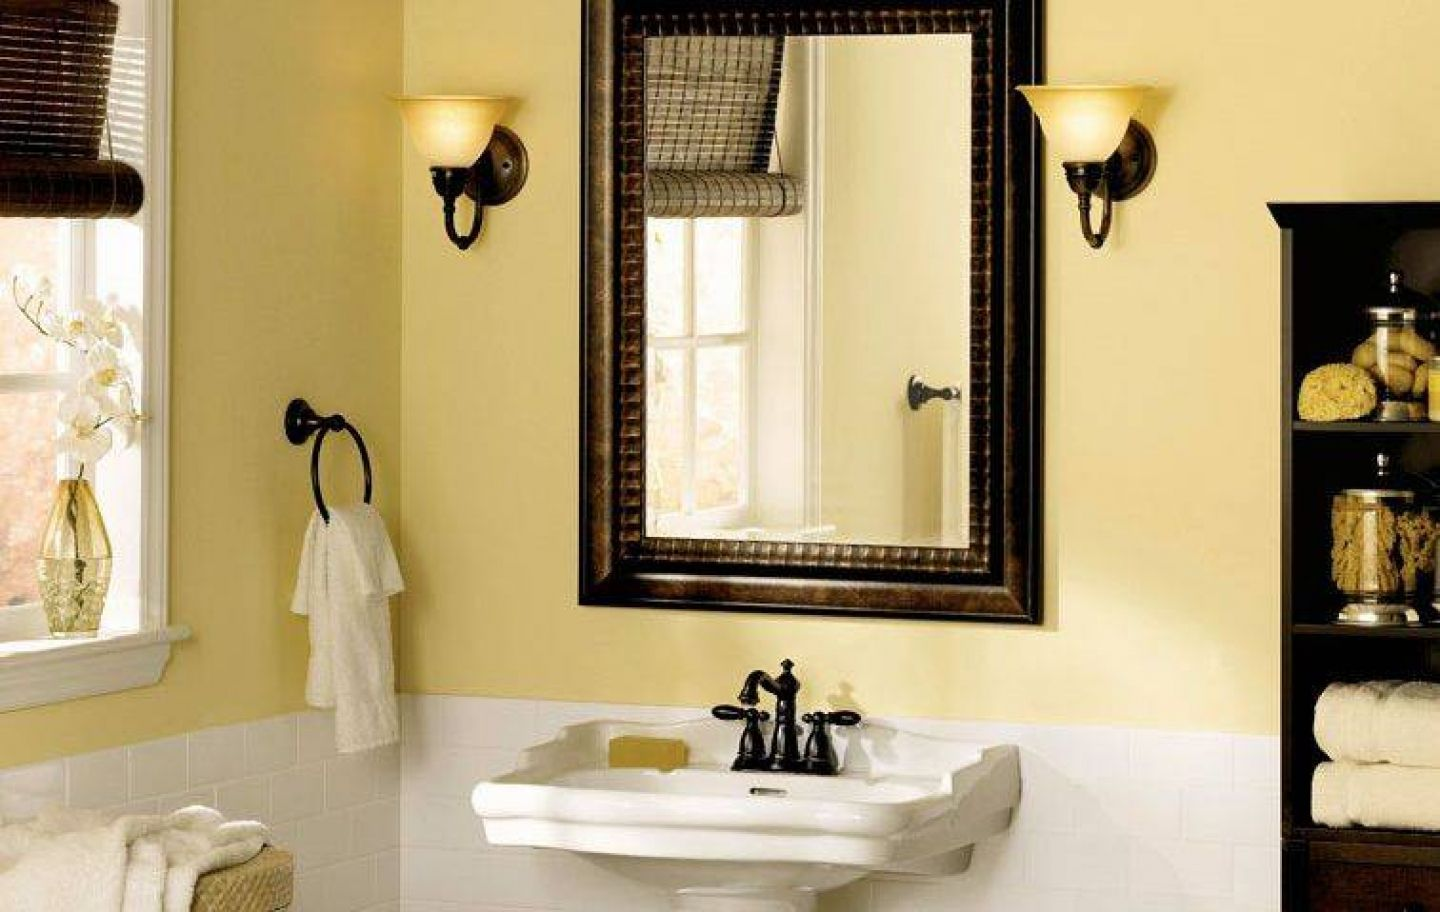 Decorate Traditional Room with Wooden Framed Bathroom Mirrors and White Pedestal Sink near Black Towel Shelves